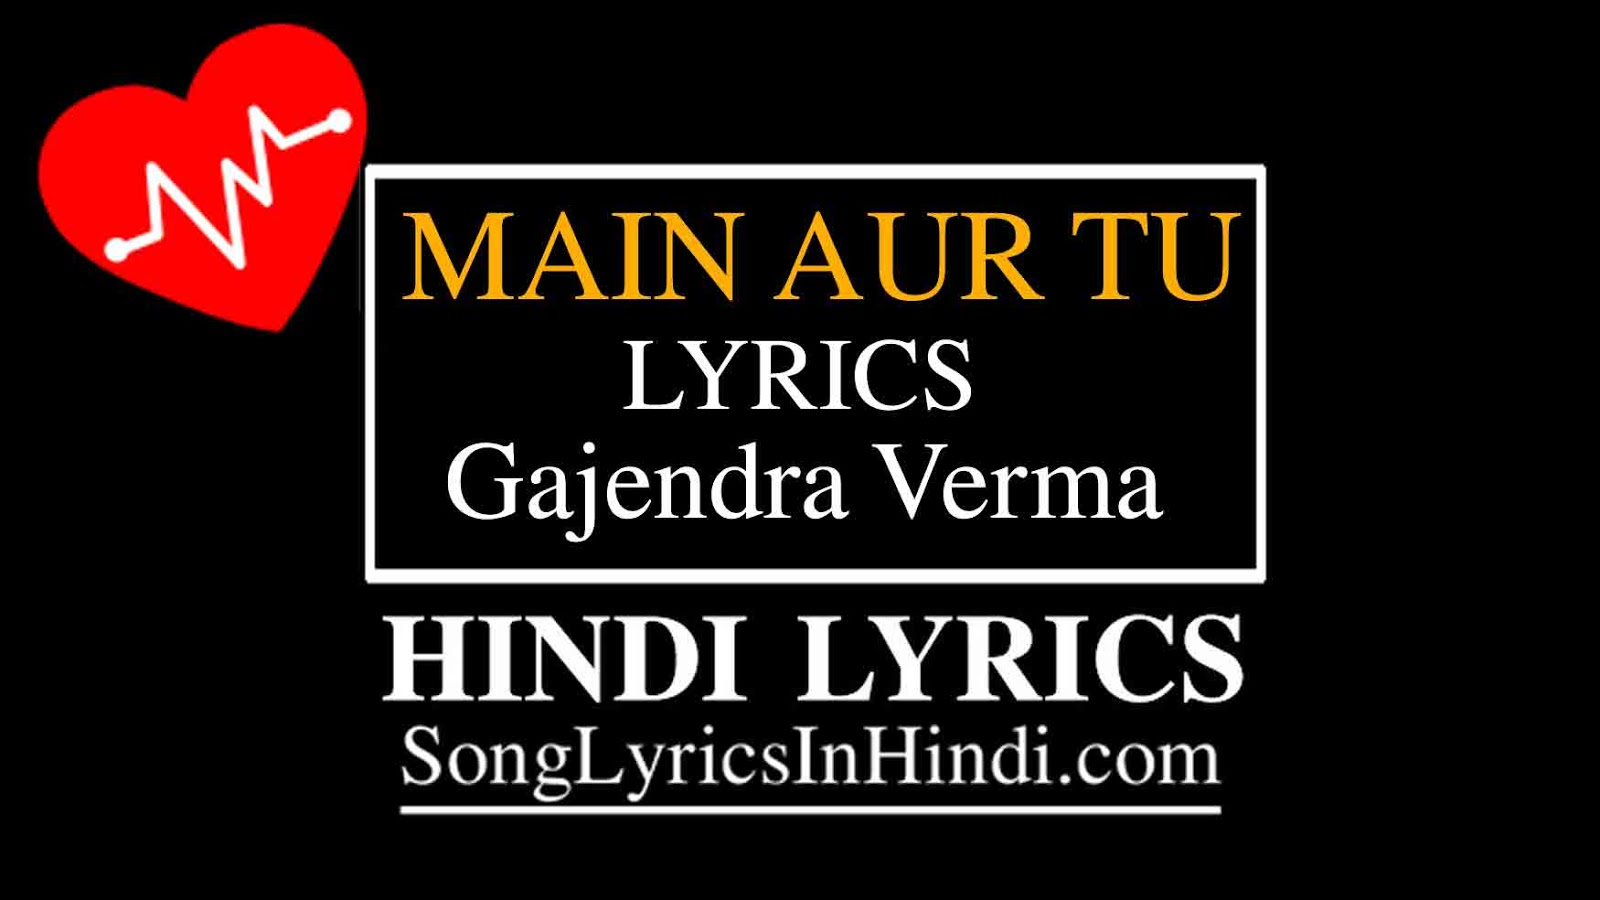 MAIN AUR TU HINDI LYRICS - Gajendra Verma